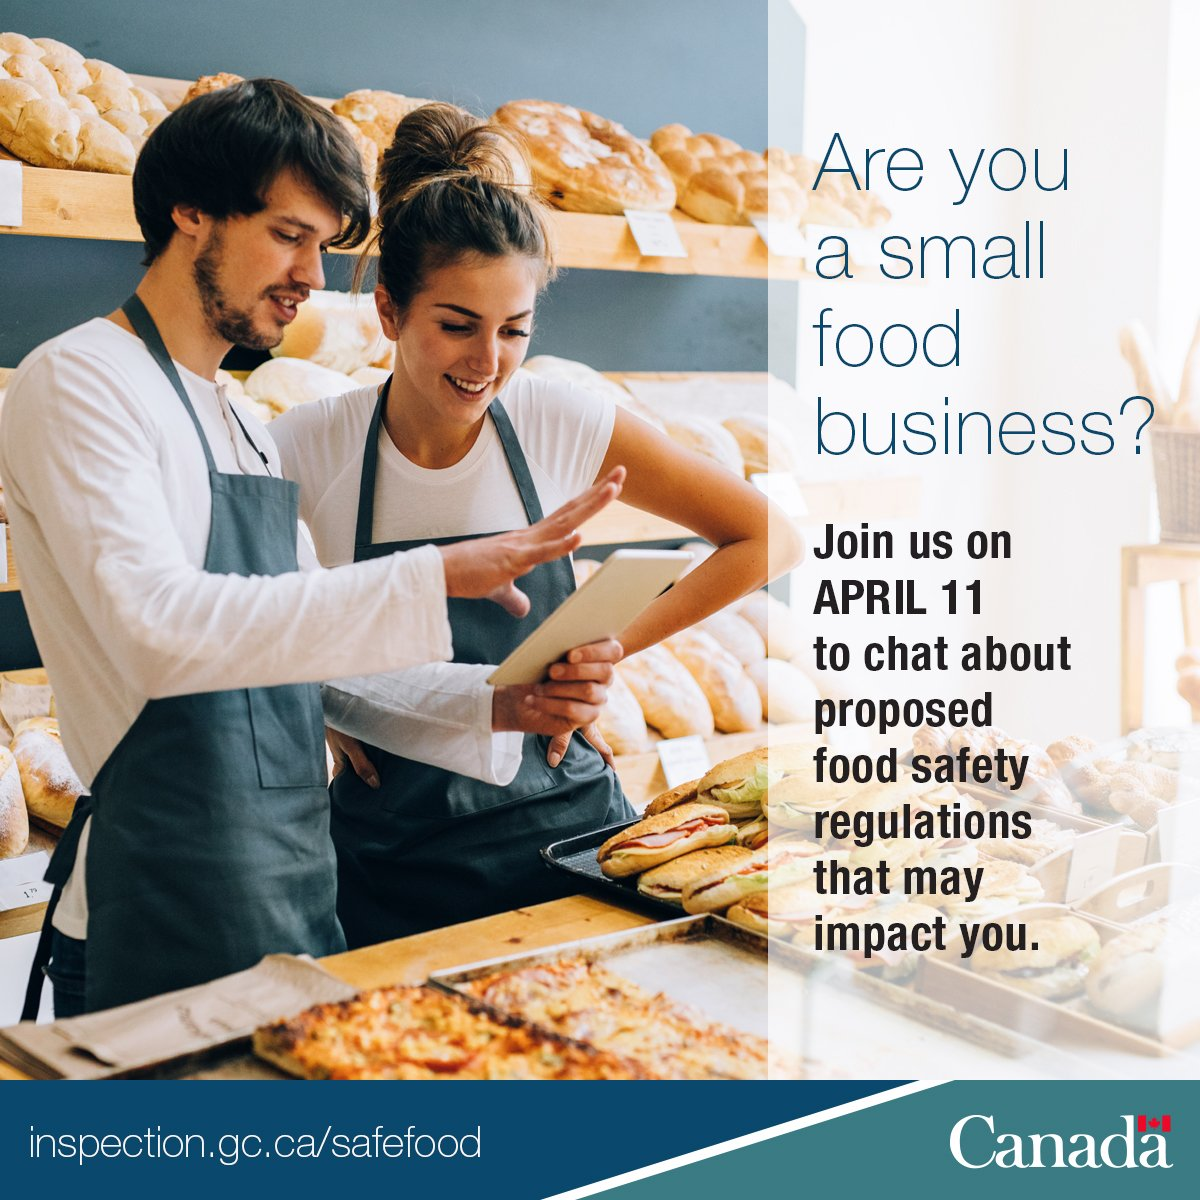 Learn abt #SafeFoodCan via upcoming live chat hosted by @canadabusiness Mark your calendar. #SMEPME https://t.co/zbYj1AE3s0 https://t.co/qWuzyNc4rE